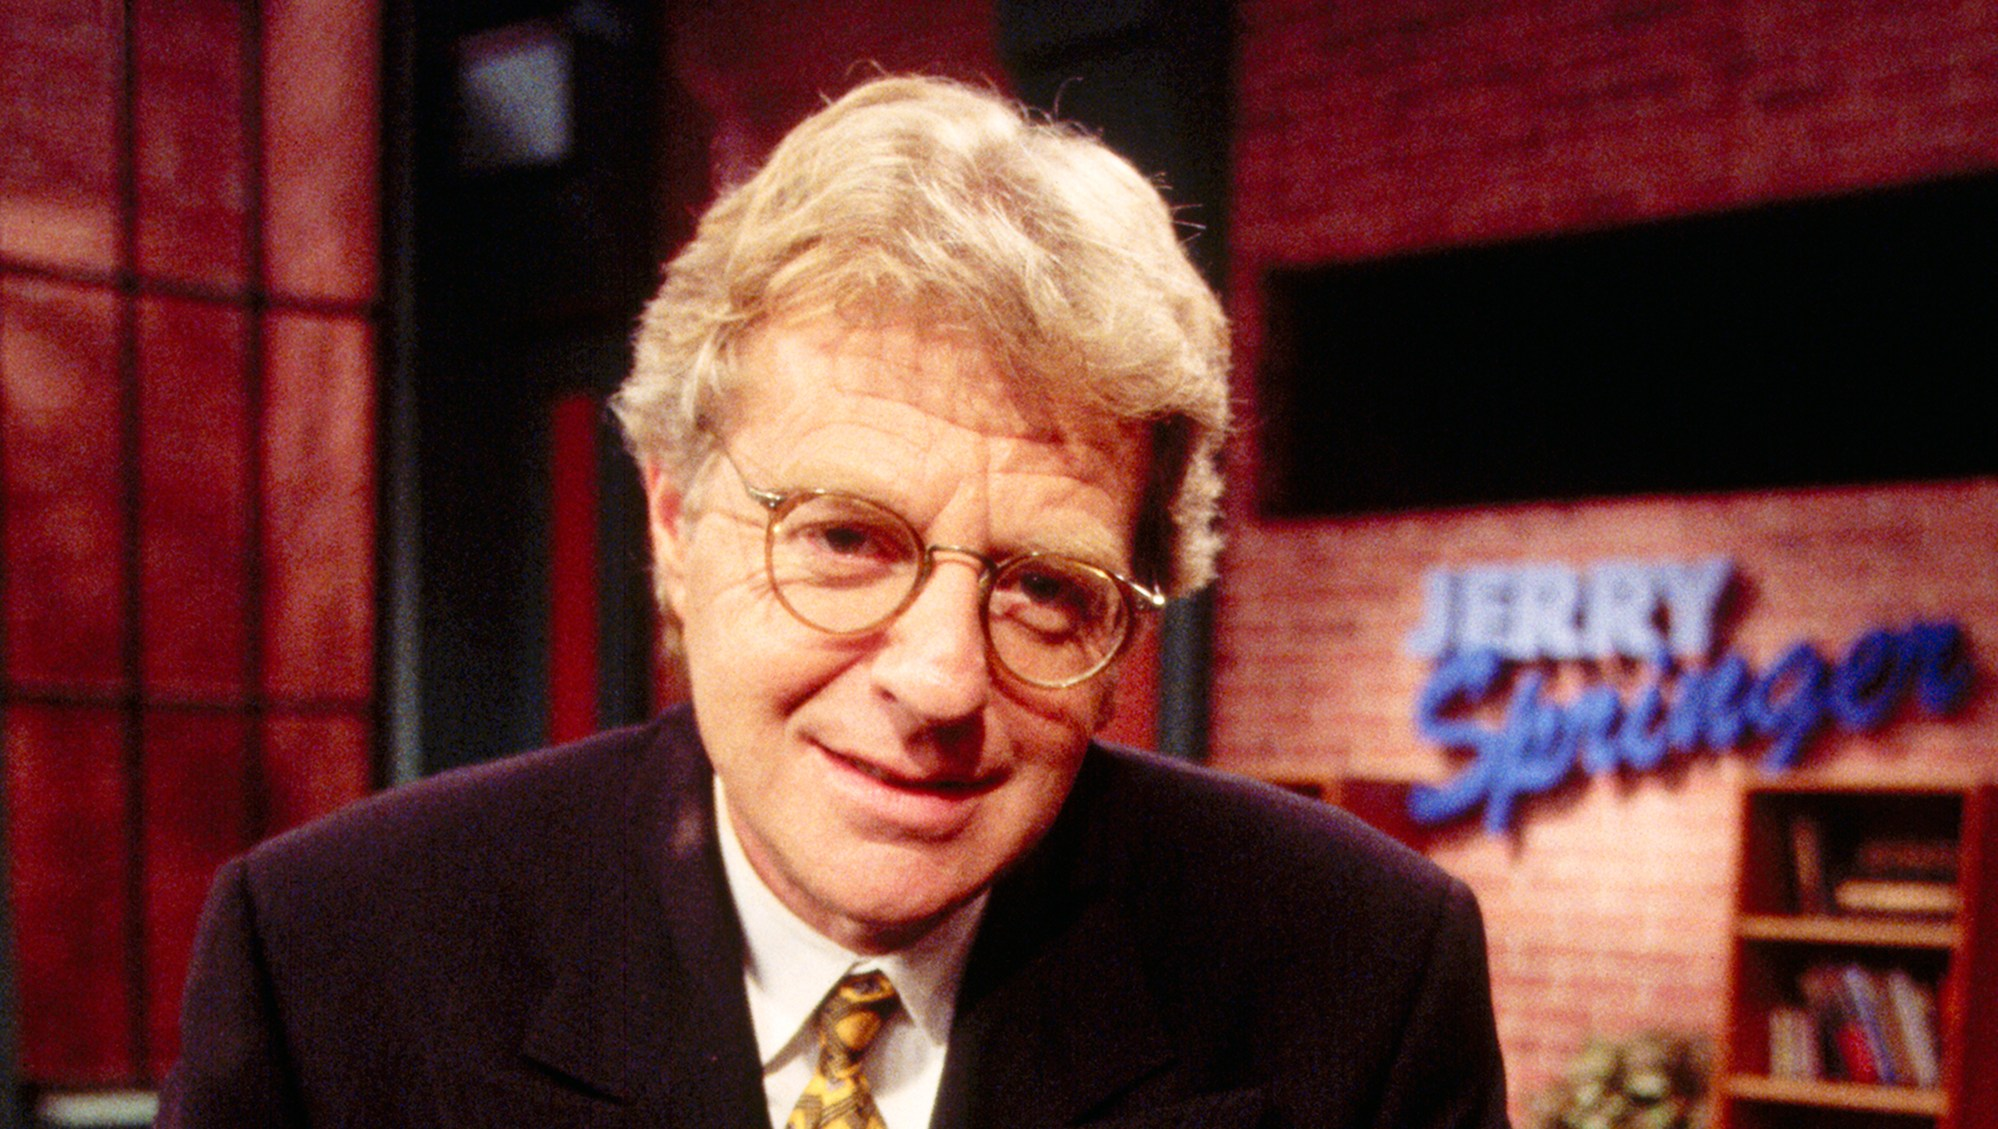 Jerry Springer on the set of his TV program 'The Jerry Springer Show'